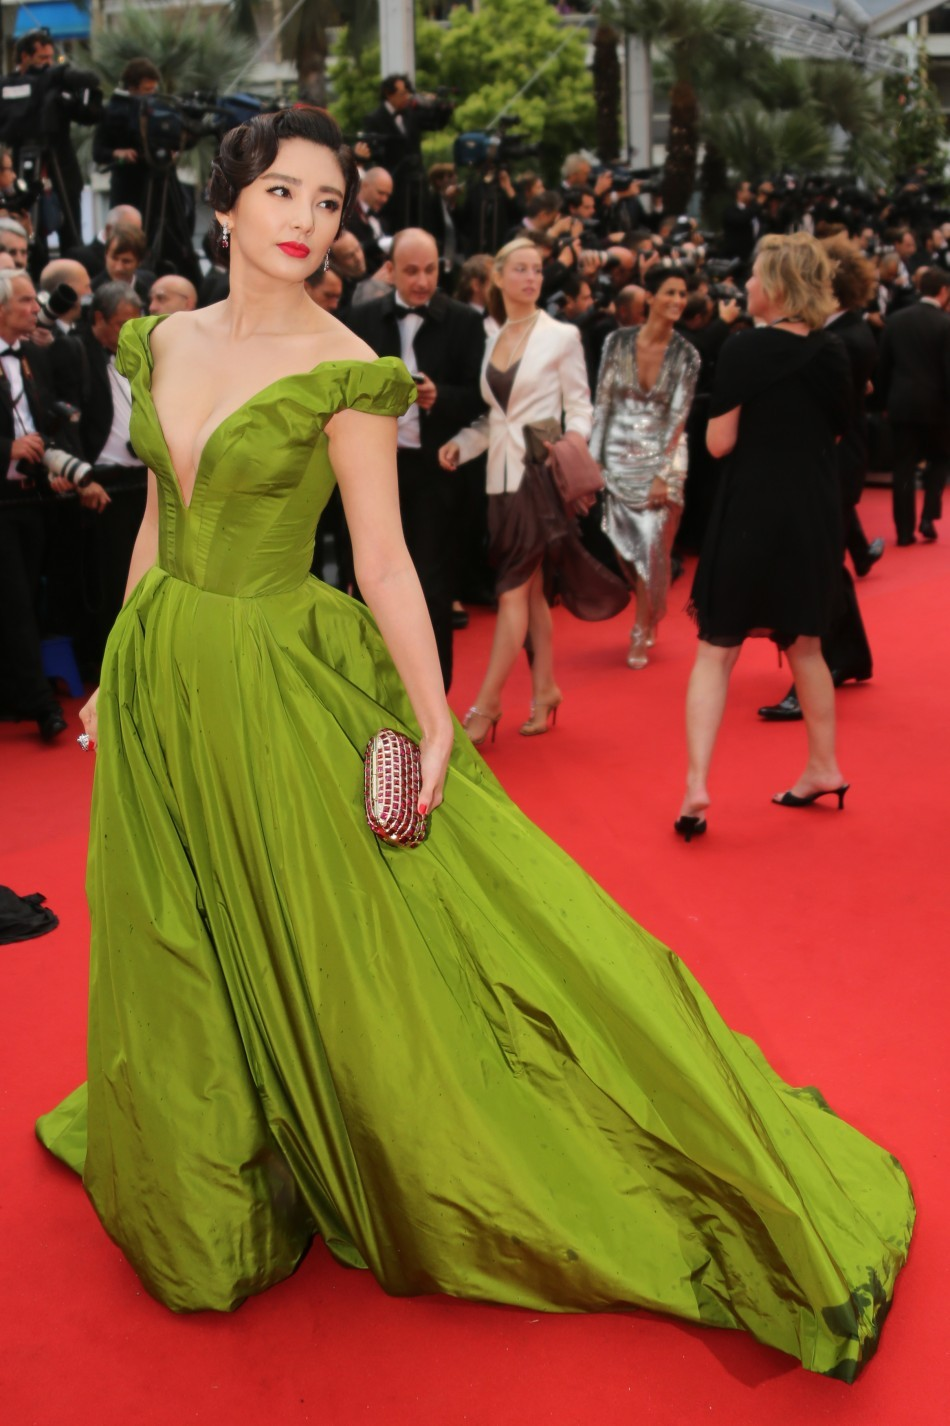 Zhang Yuki in Ulyana Sergeenko at The Cannes Film Festival for The Great Gatsby Premiere